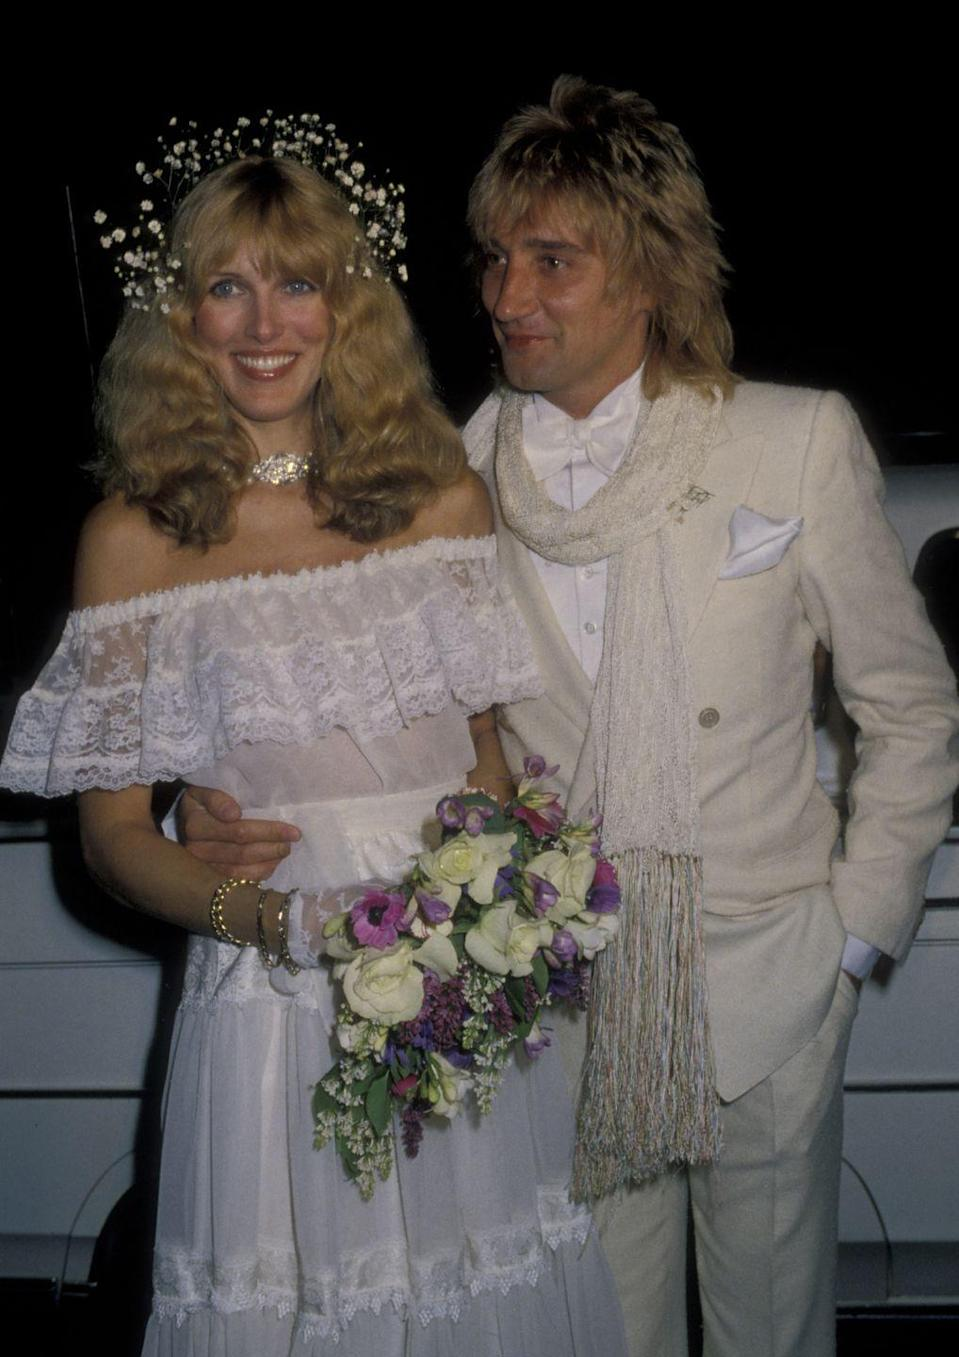 <p>For her wedding to Rod Stewart in April 1979, Alana Hamilton wore an off-the-shoulder dress and a crown of baby's breath.</p>